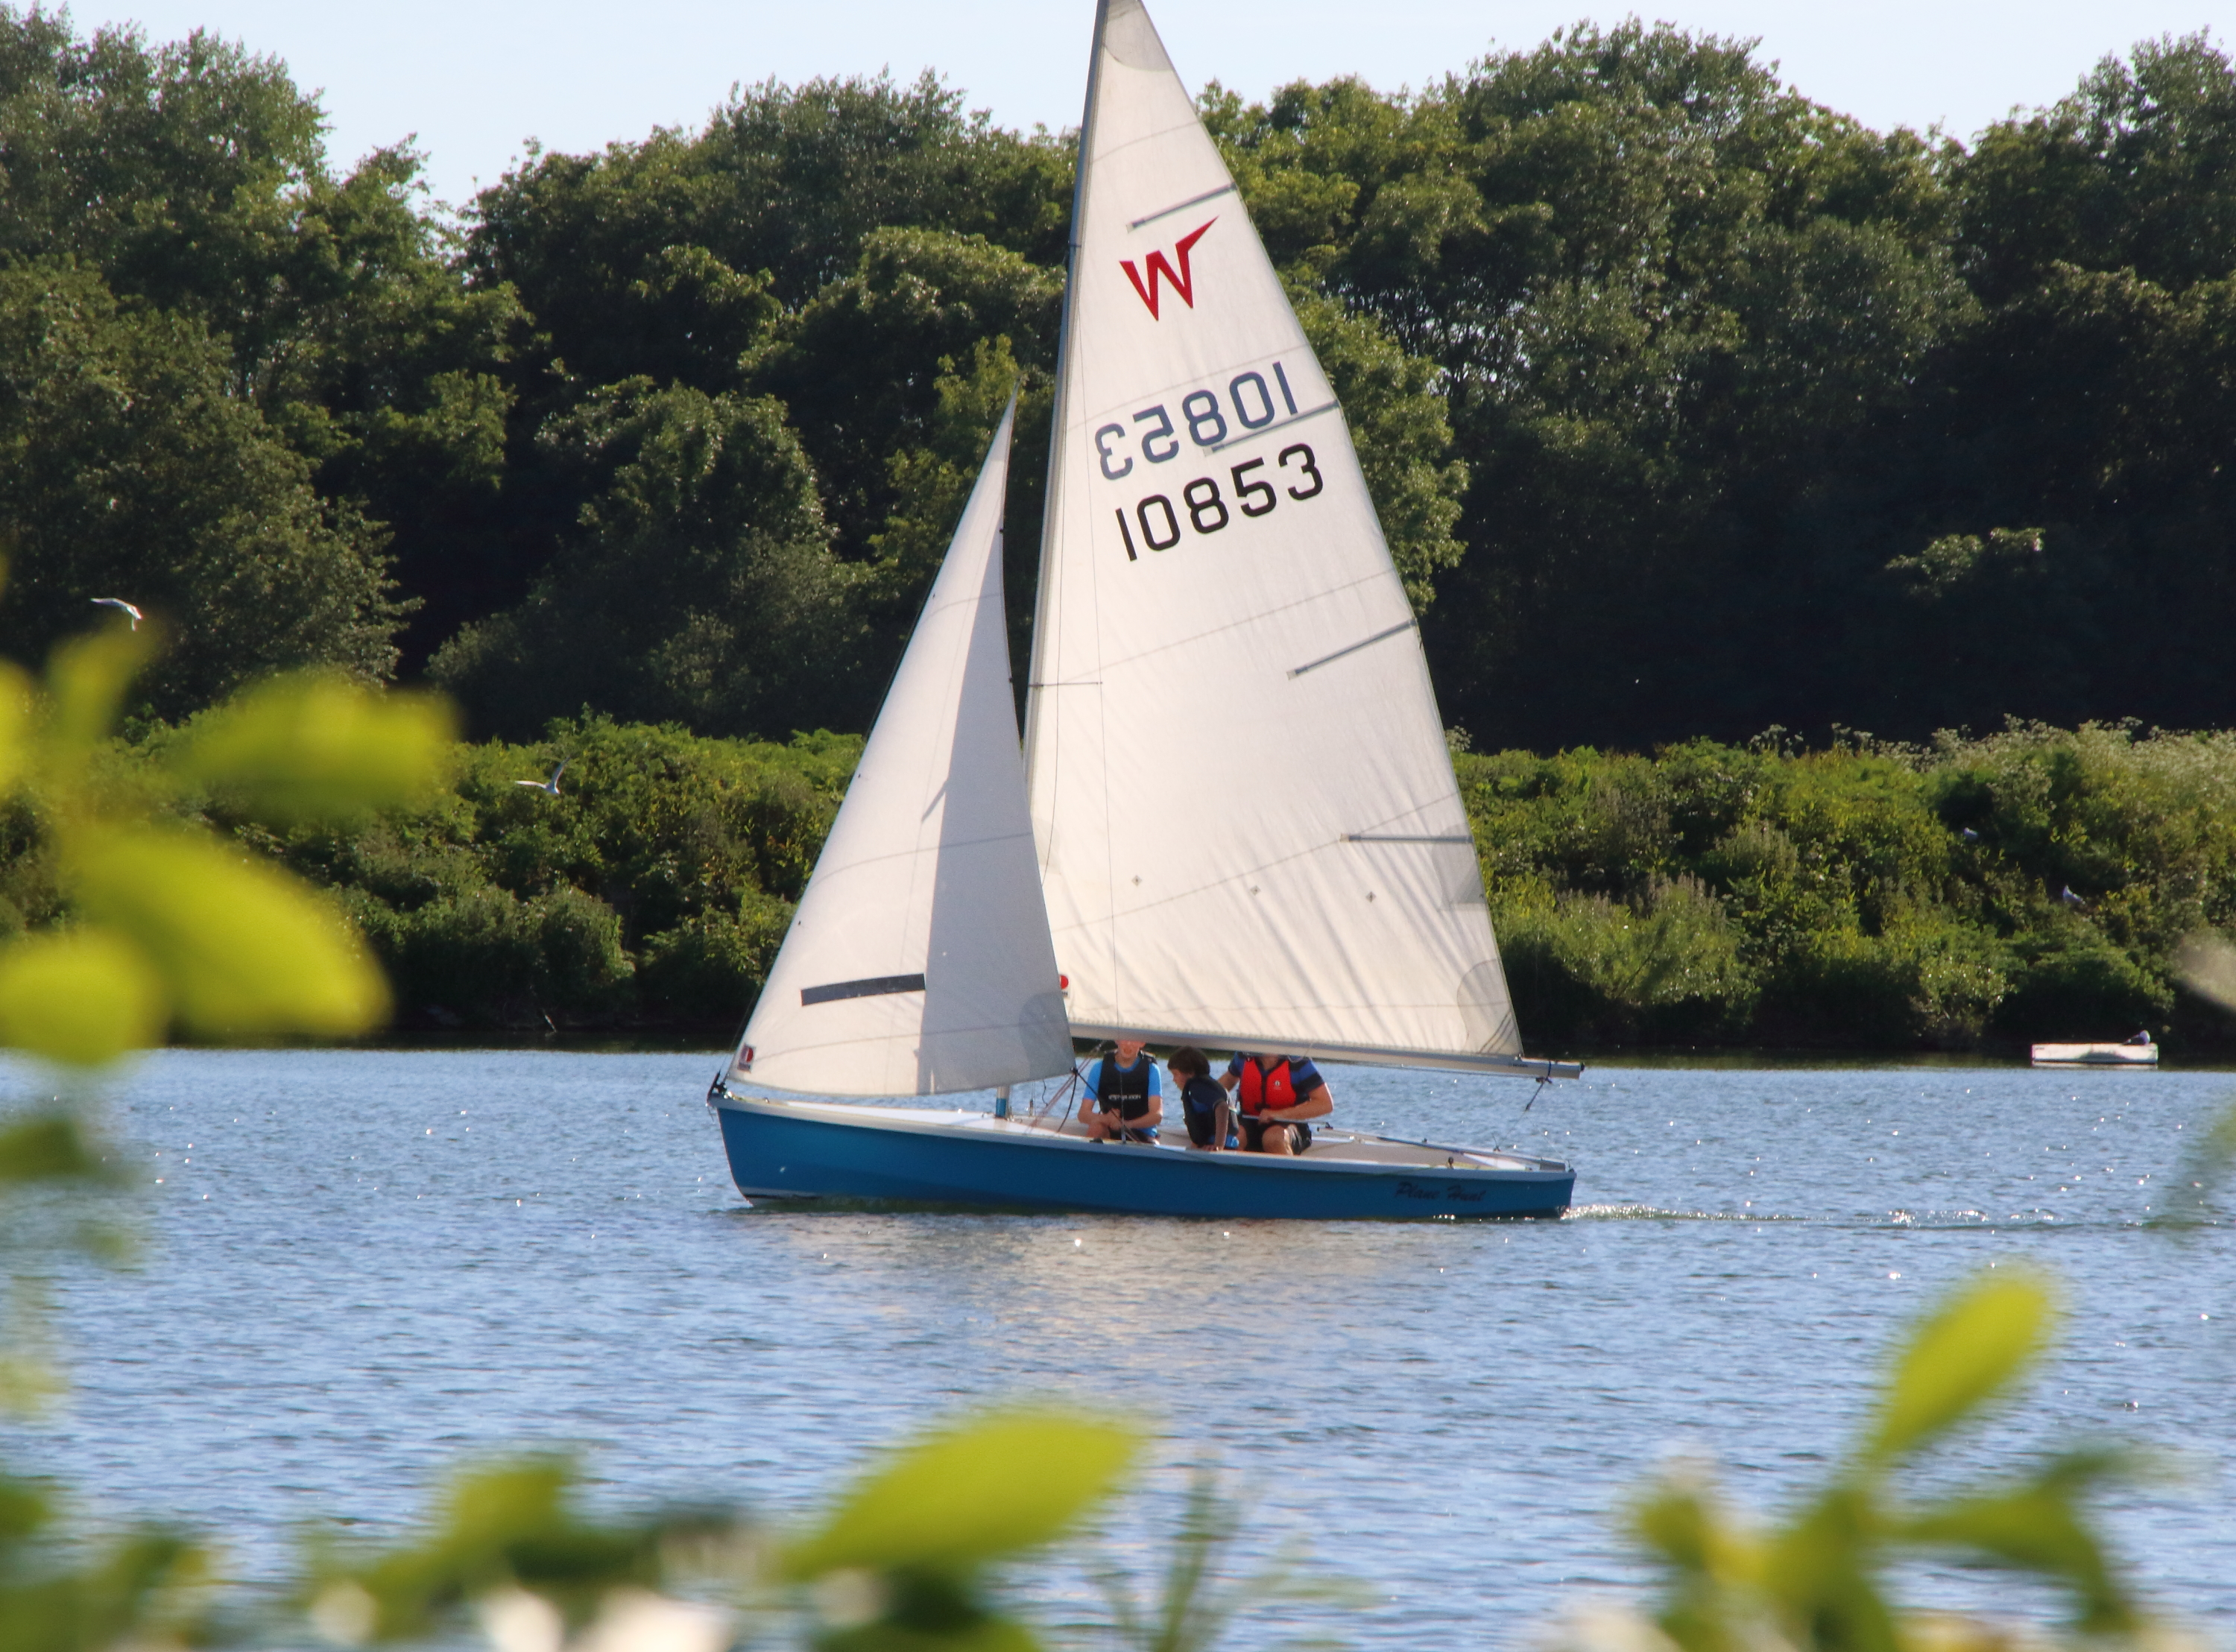 Men sailing on a dinghy at Priory Country Park Lake following the ease of restrictions on forms of exercise during the COVID 19 Lockdown as temperatures hit 27 degrees C, the hottest day of the year in the UK. (Photo by Keith Mayhew / SOPA Images/Sipa USA)